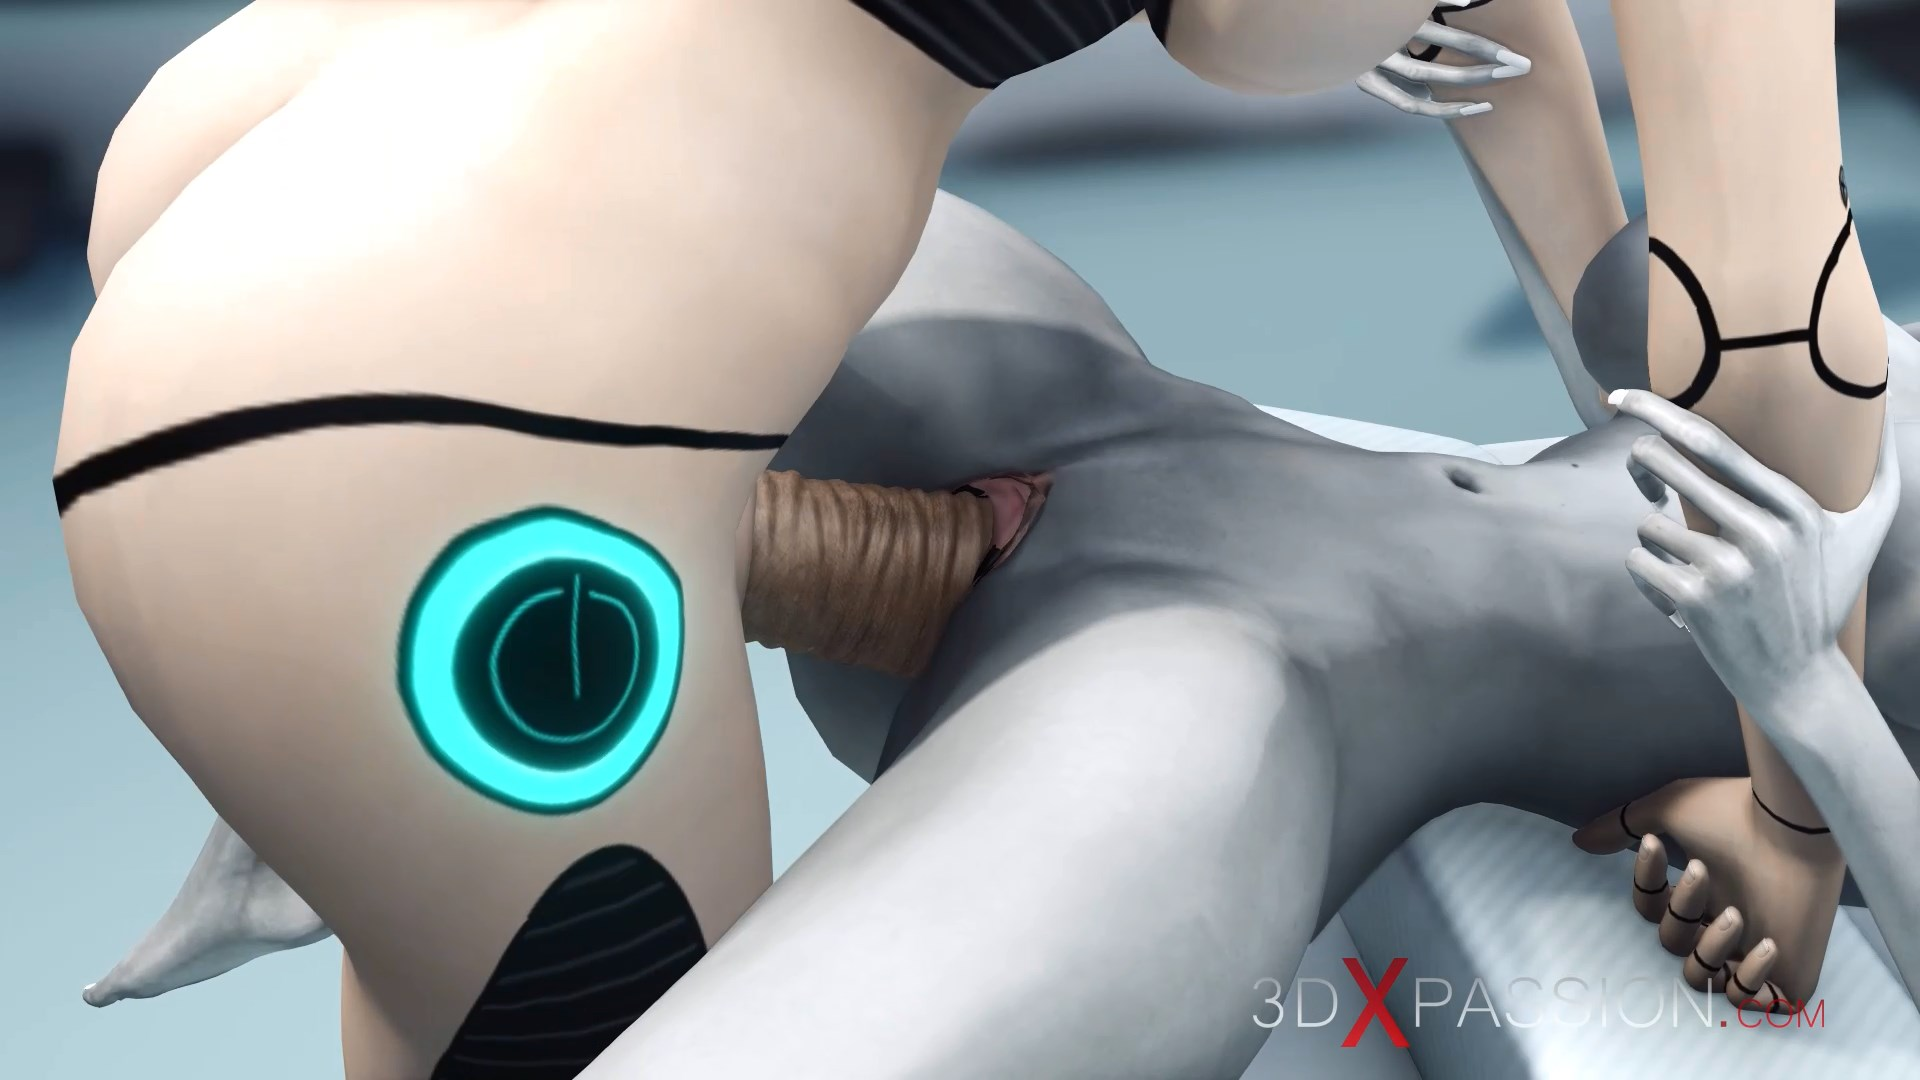 Sci-fi female android missionary alien surgery room space station